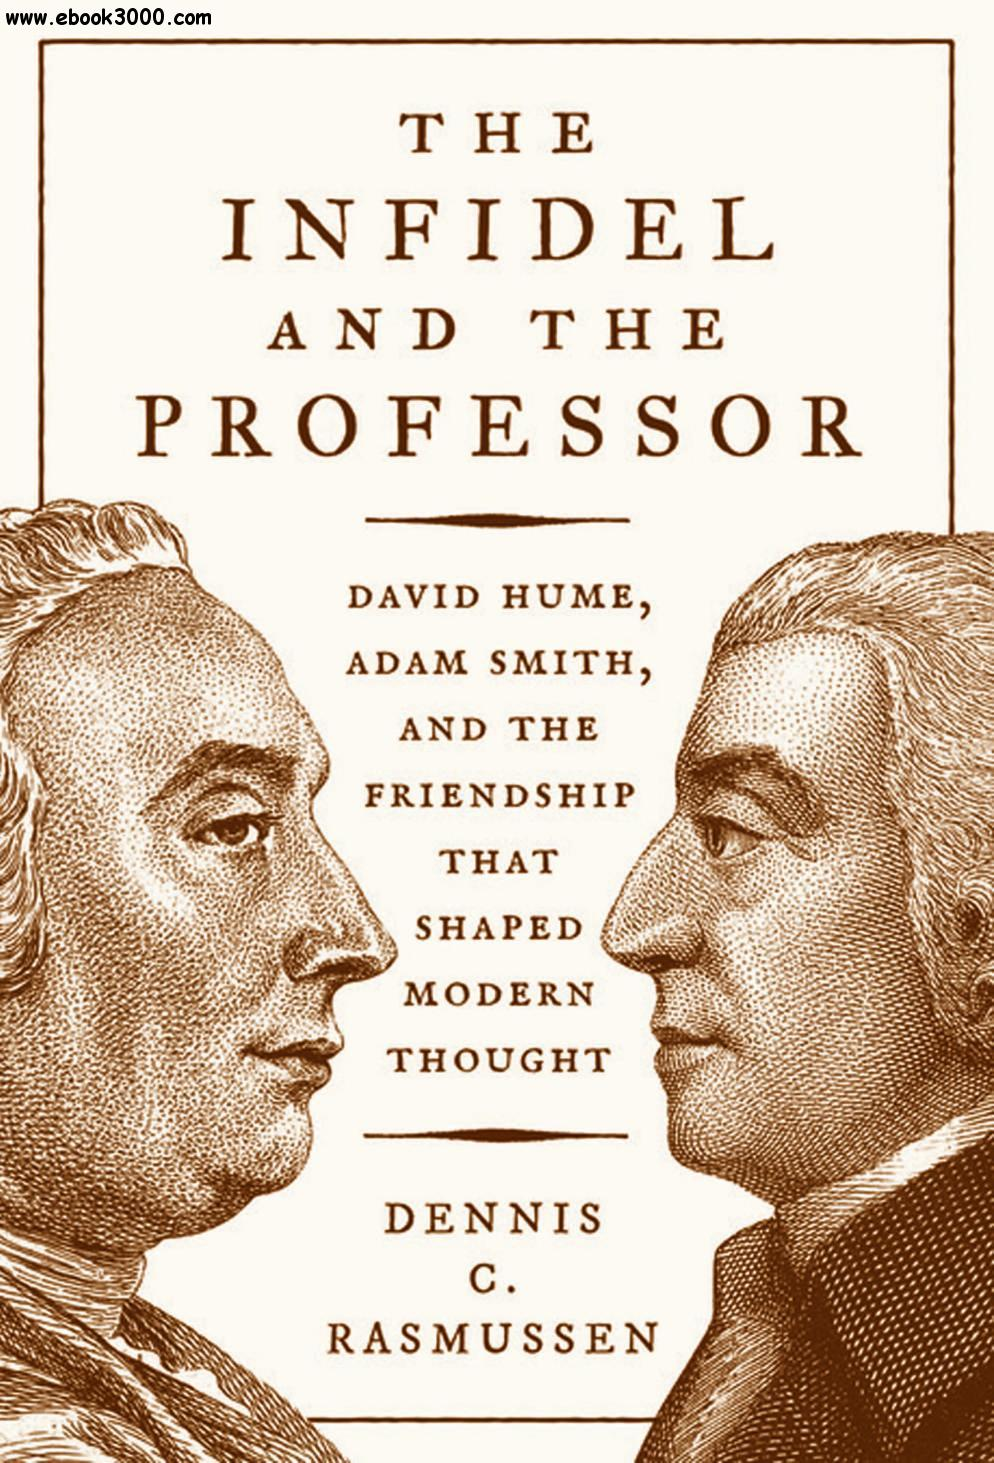 The Infidel and the Professor: David Hume, Adam Smith, and